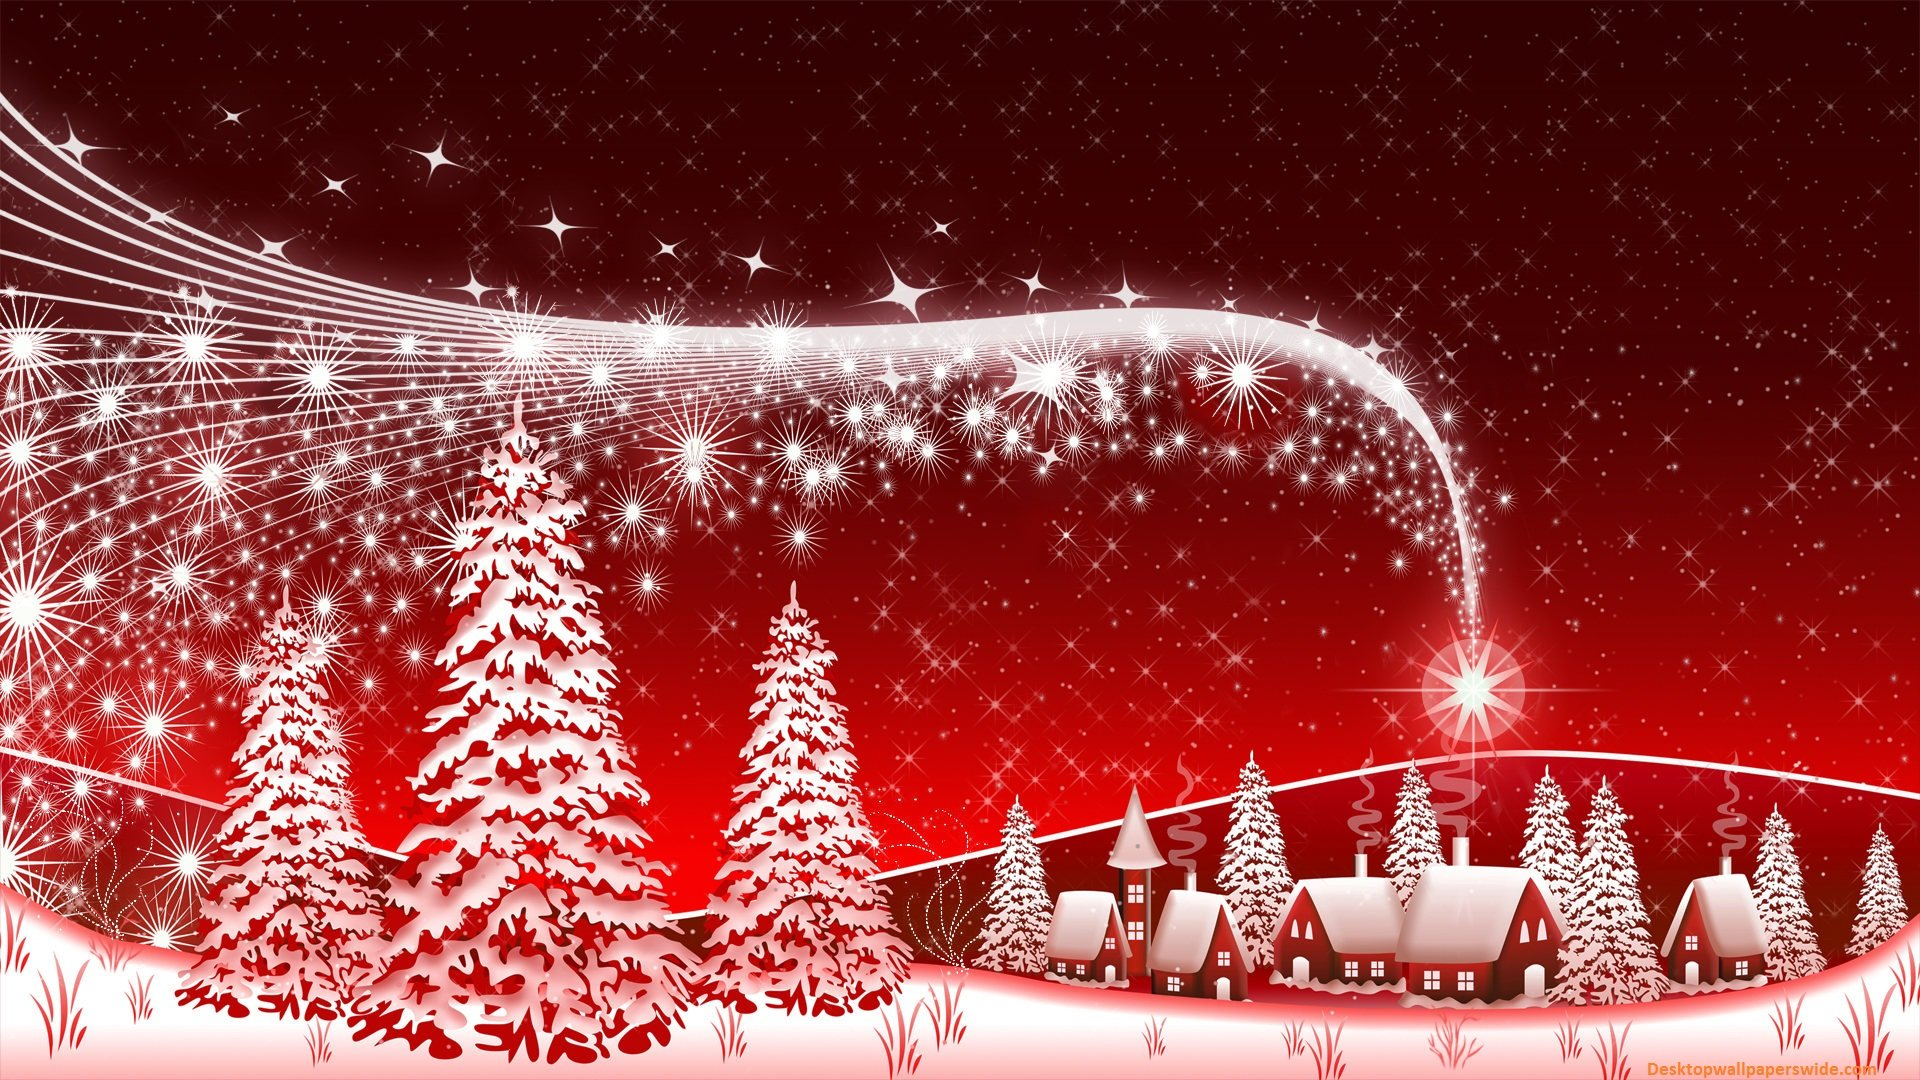 Merry Christmas Wallpapers 1920x1080